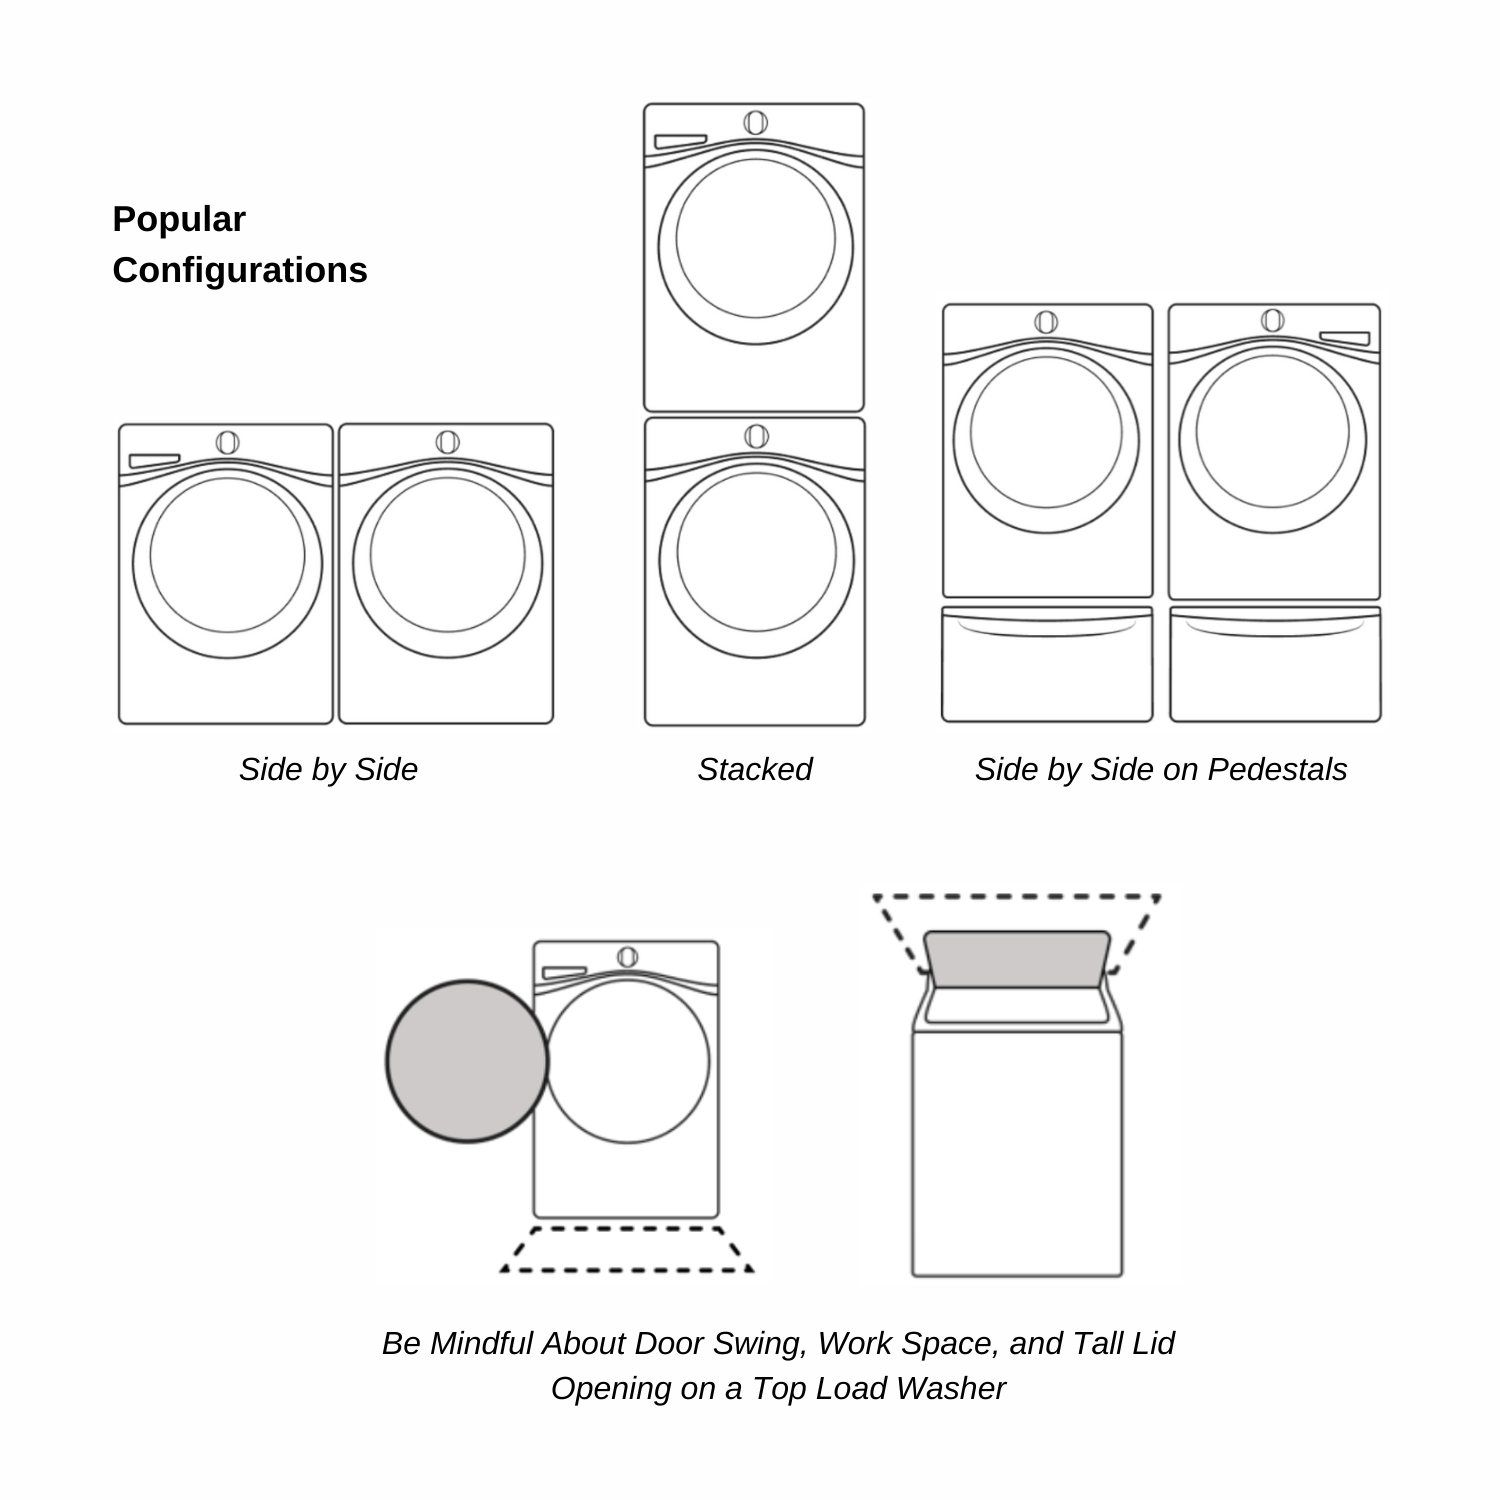 Washer-Dryer-Configurations